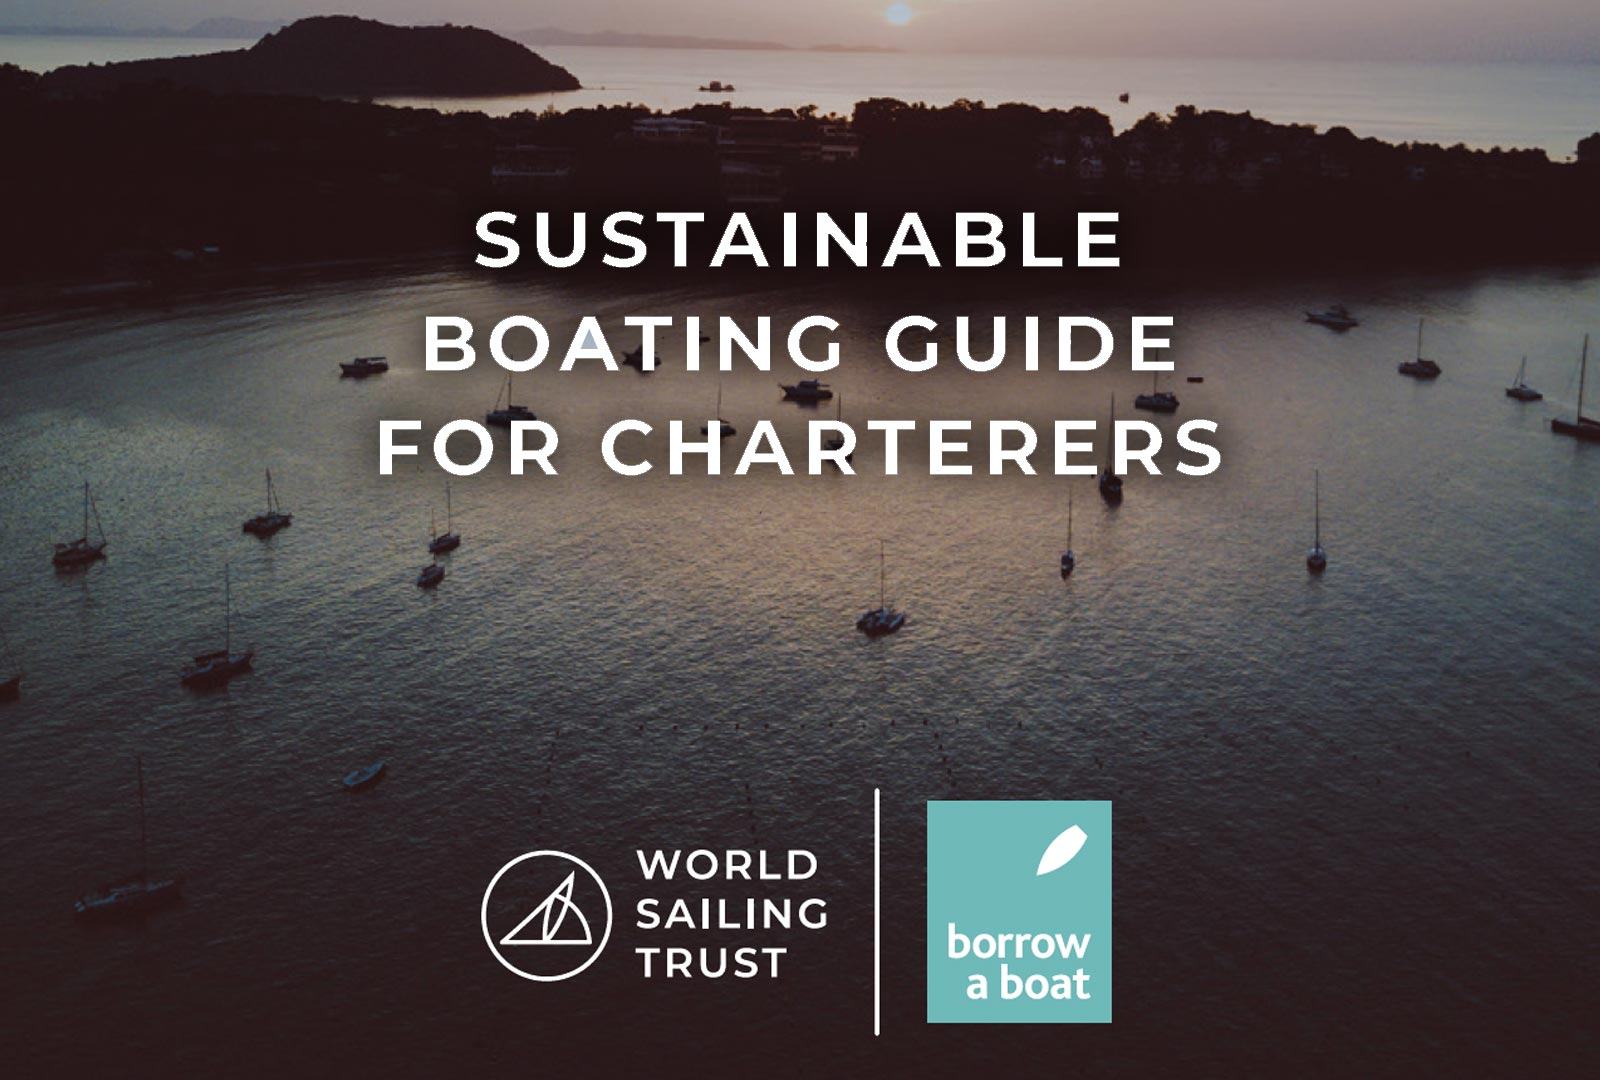 Sustainable Boating Guide launched